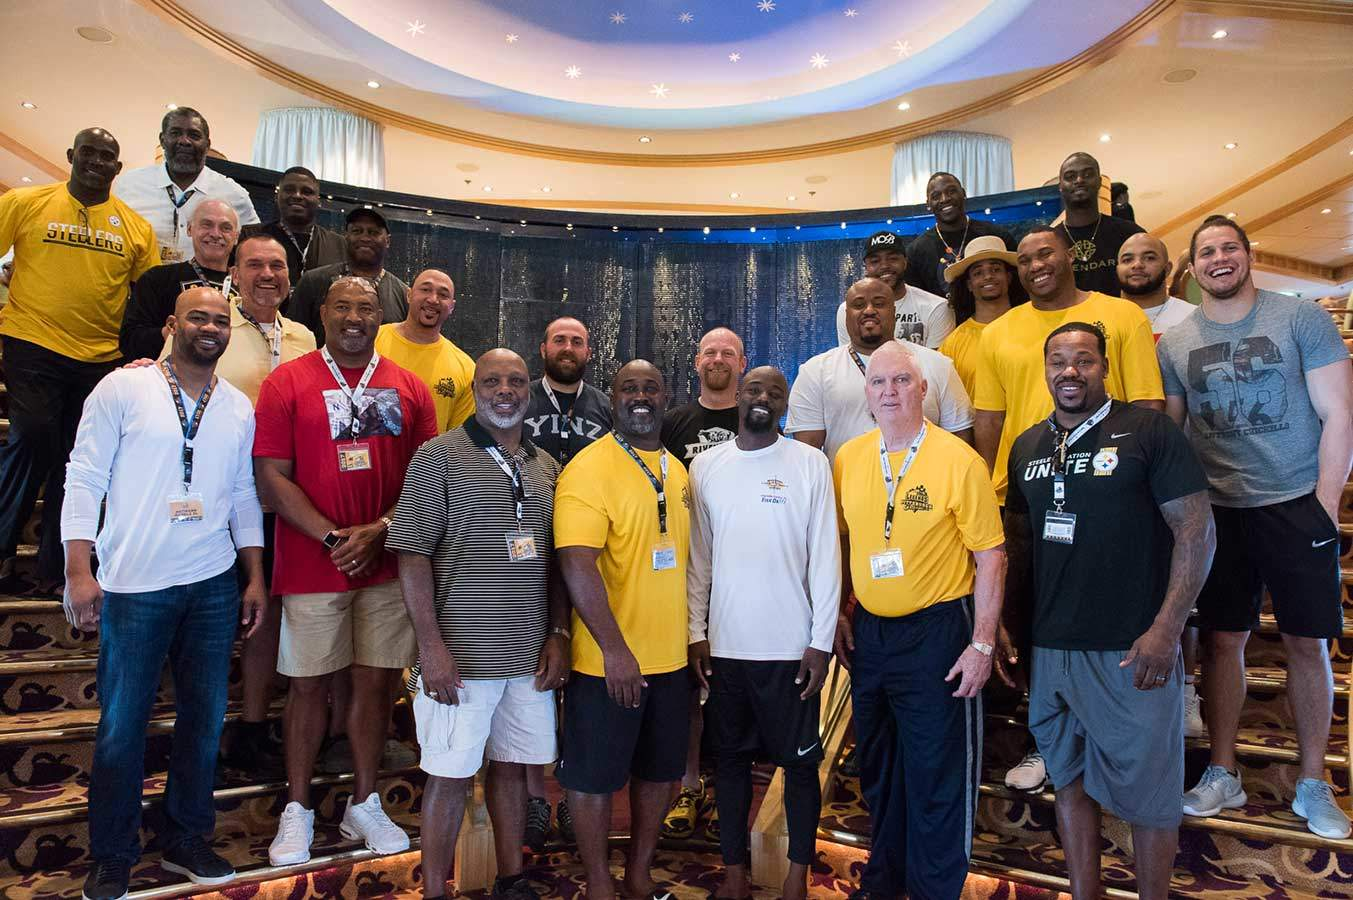 09_2017_legends_of_pittsburgh_cruise_photo